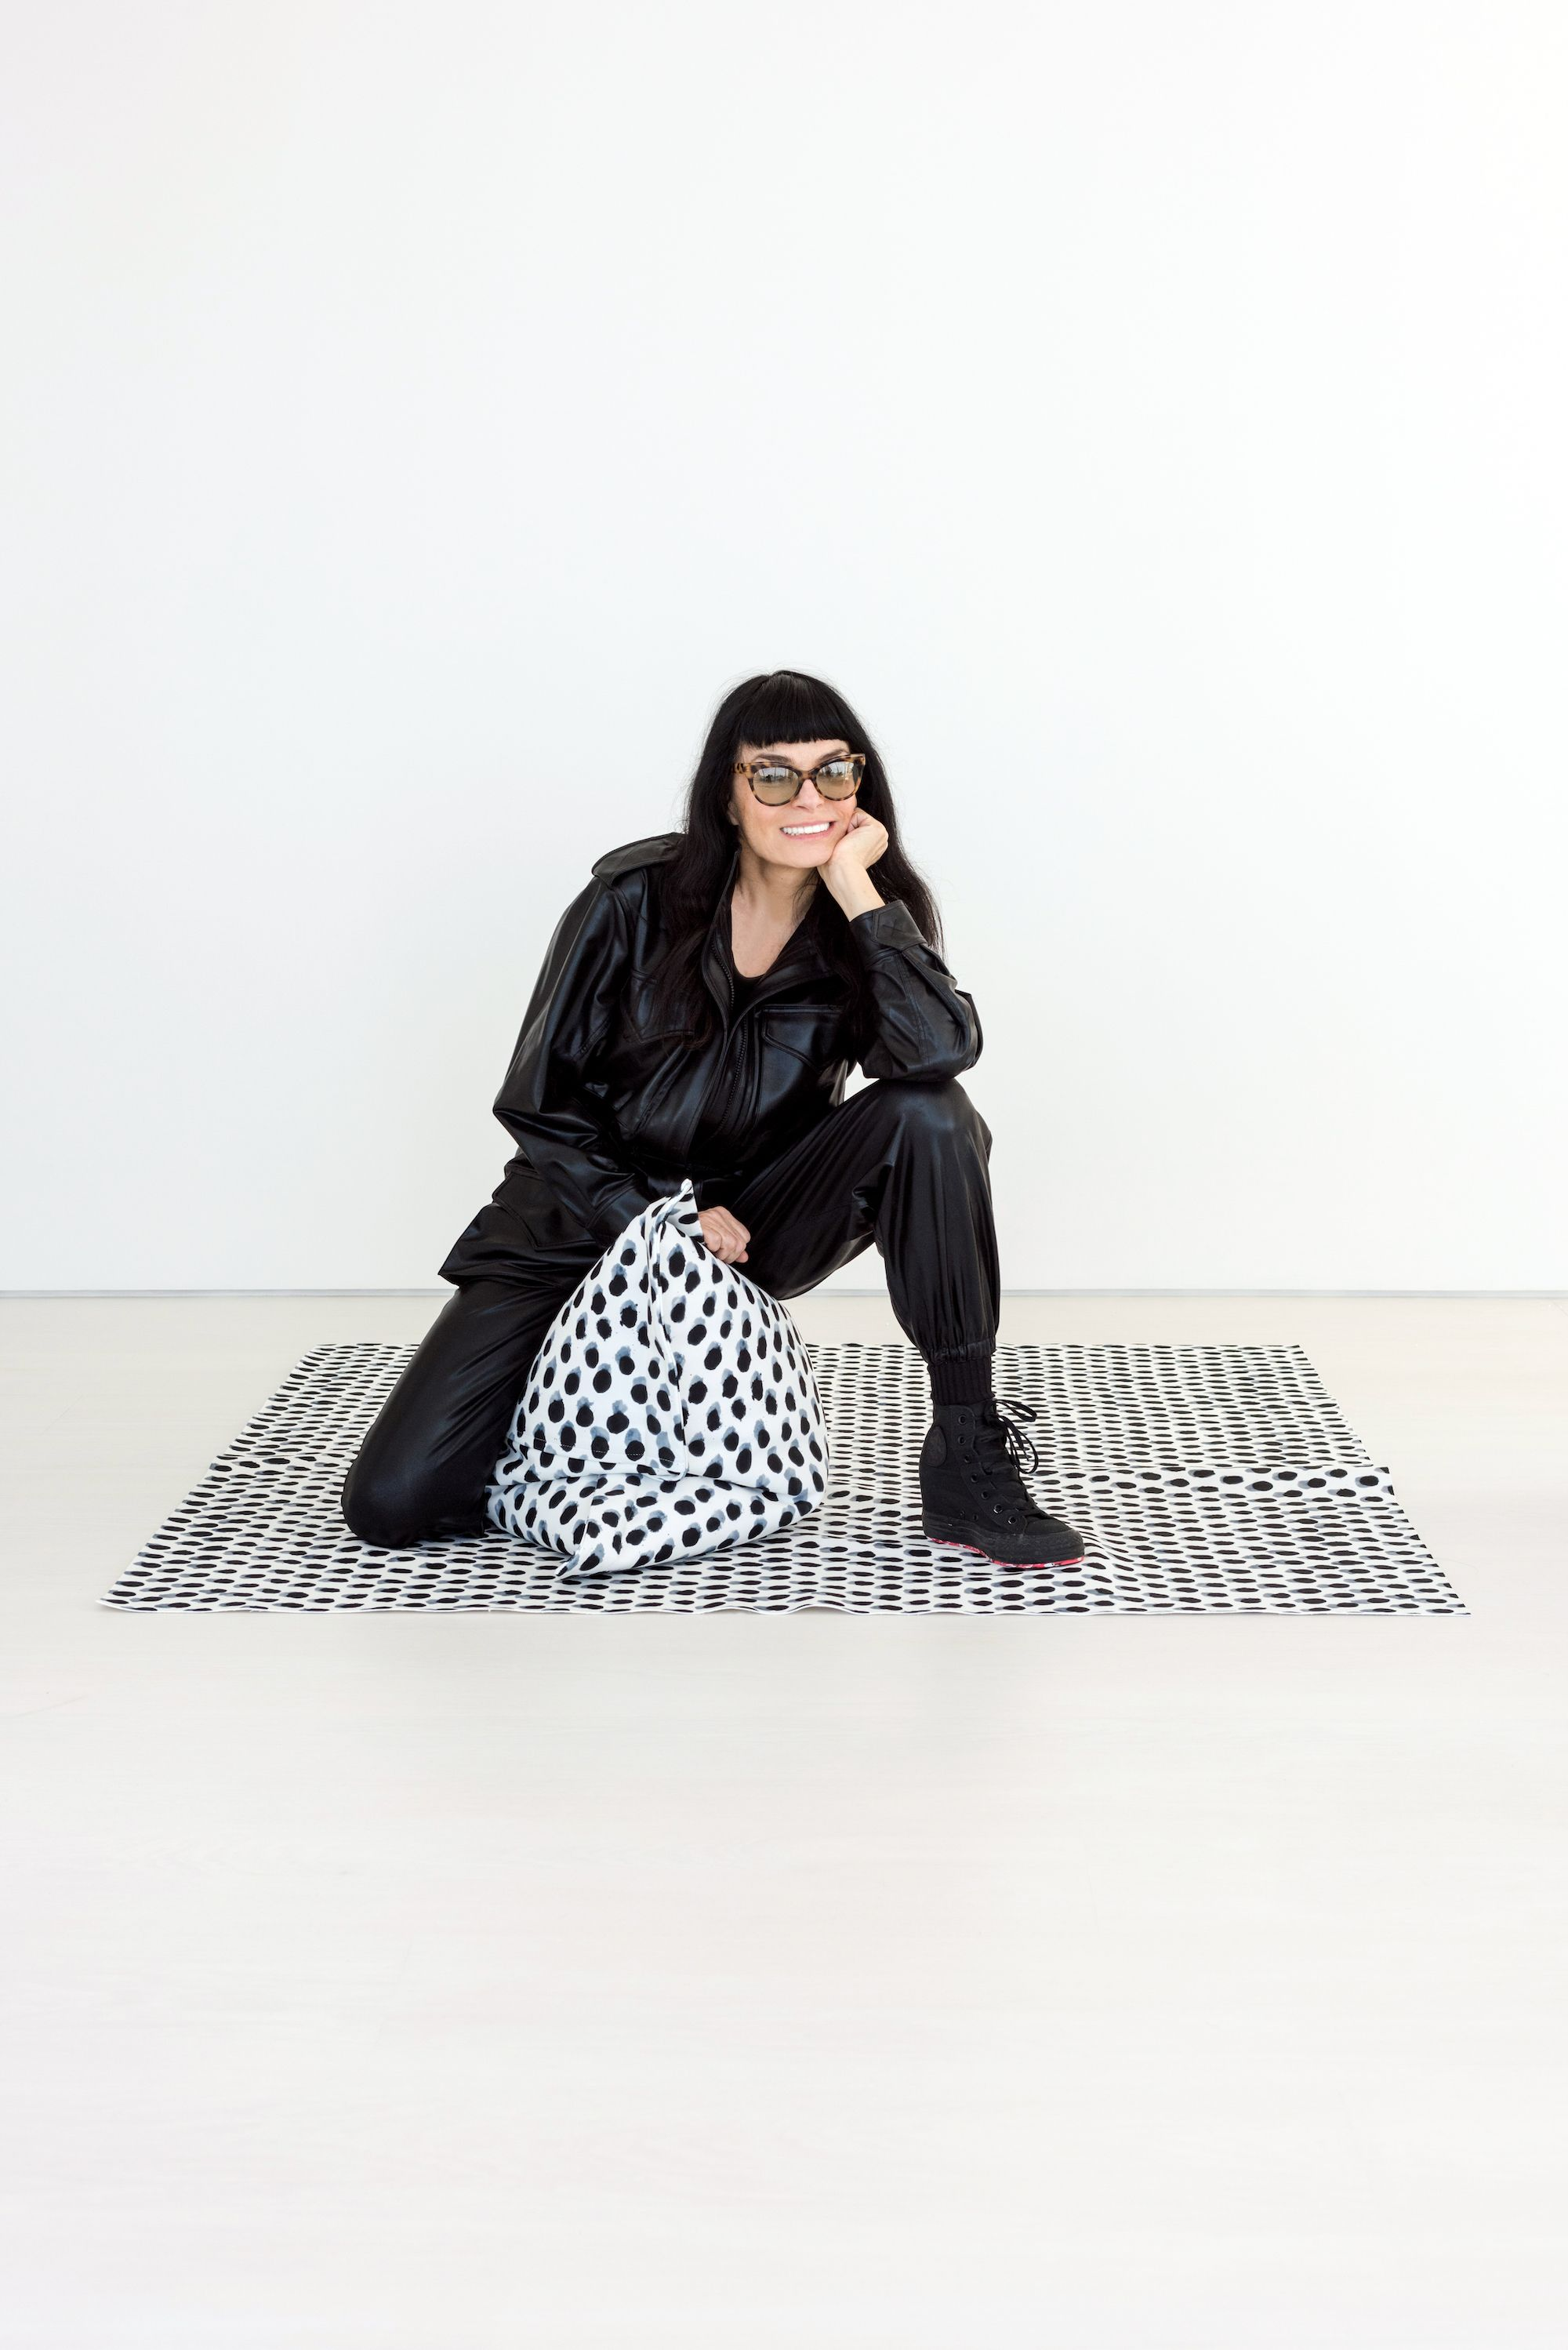 Norma Kamali Has Designed a Pillow and—of Course—It's Made of Swimsuit Fabric